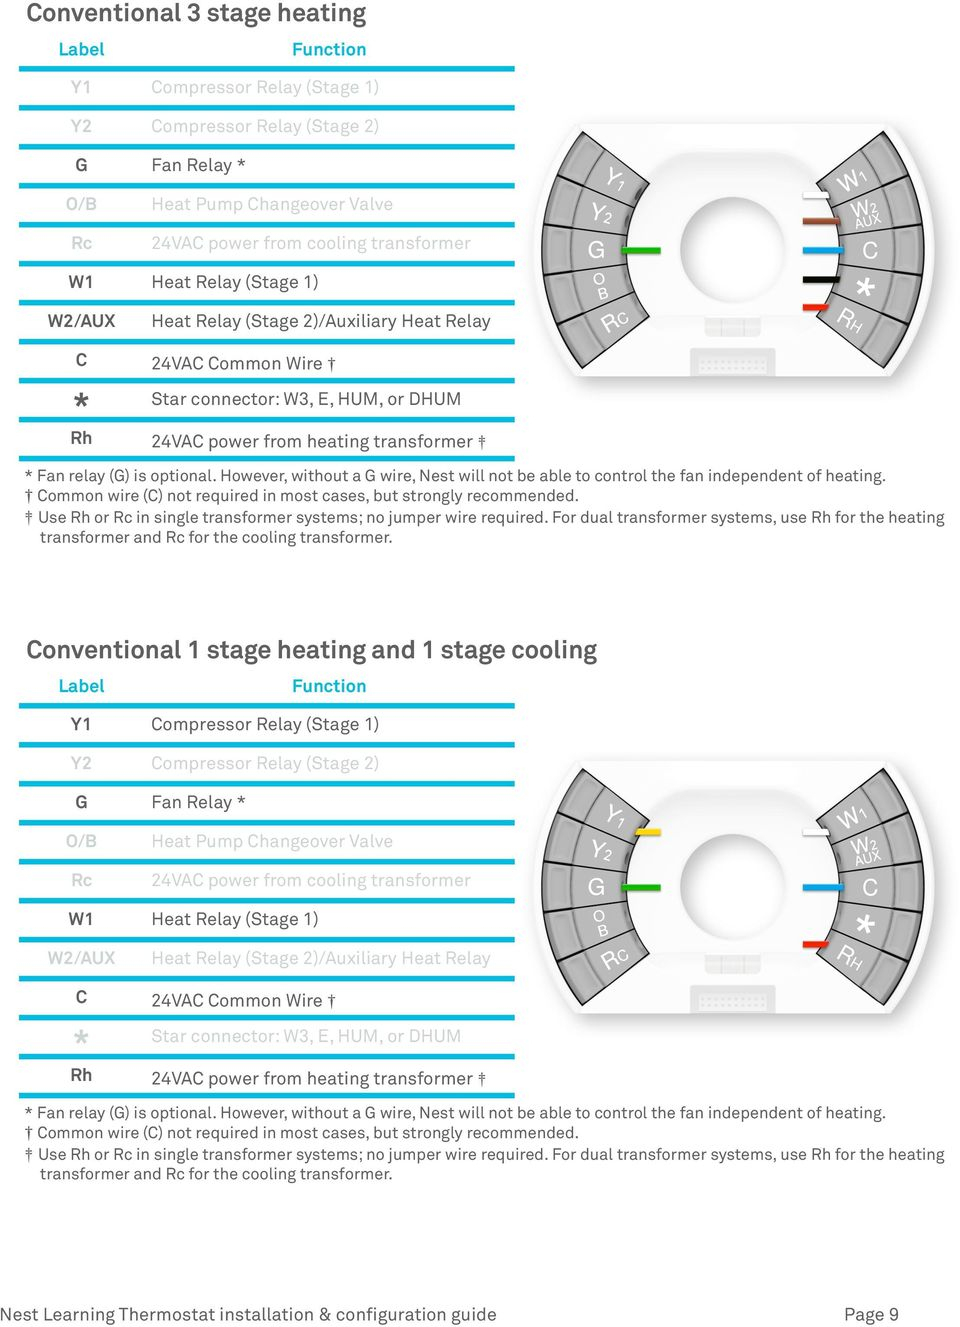 Nest Learning Thermostat Pro Installation & Configuration Guide - Pdf - Nest Second Generation Multistage Wiring Diagram